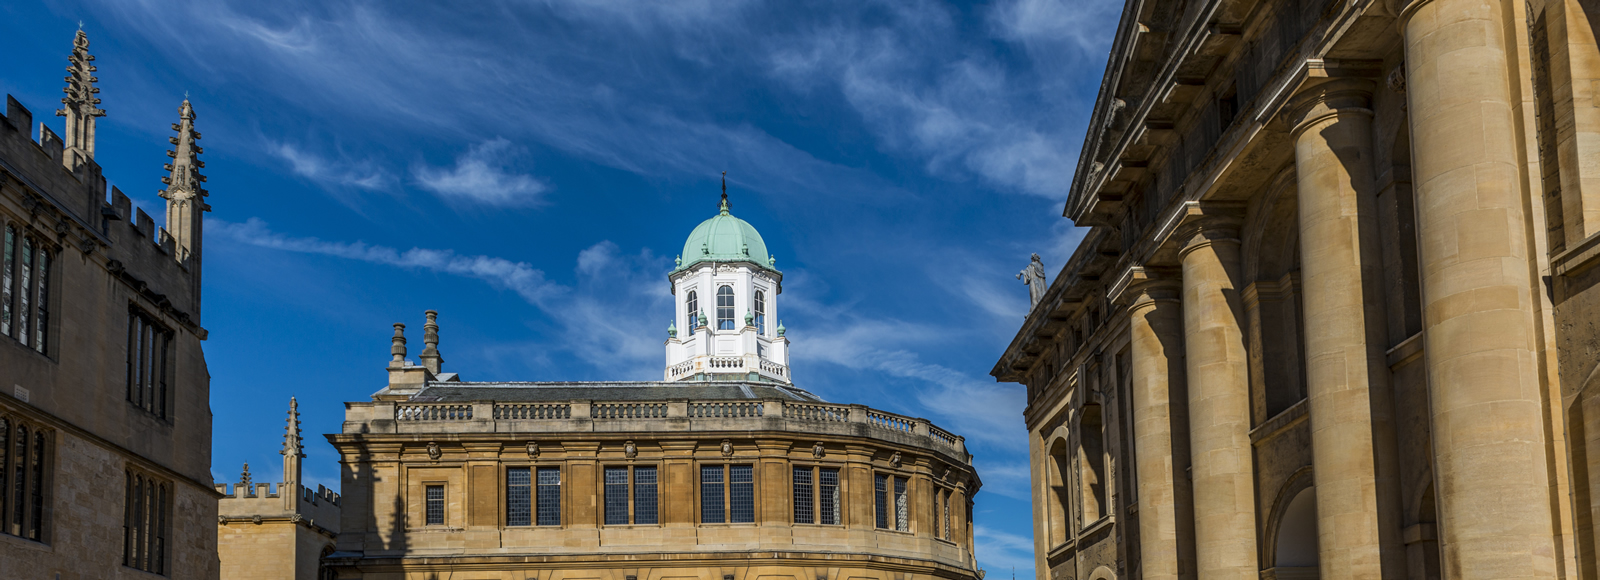 The Sheldonian Theatre and the Clarendon Building, Oxford